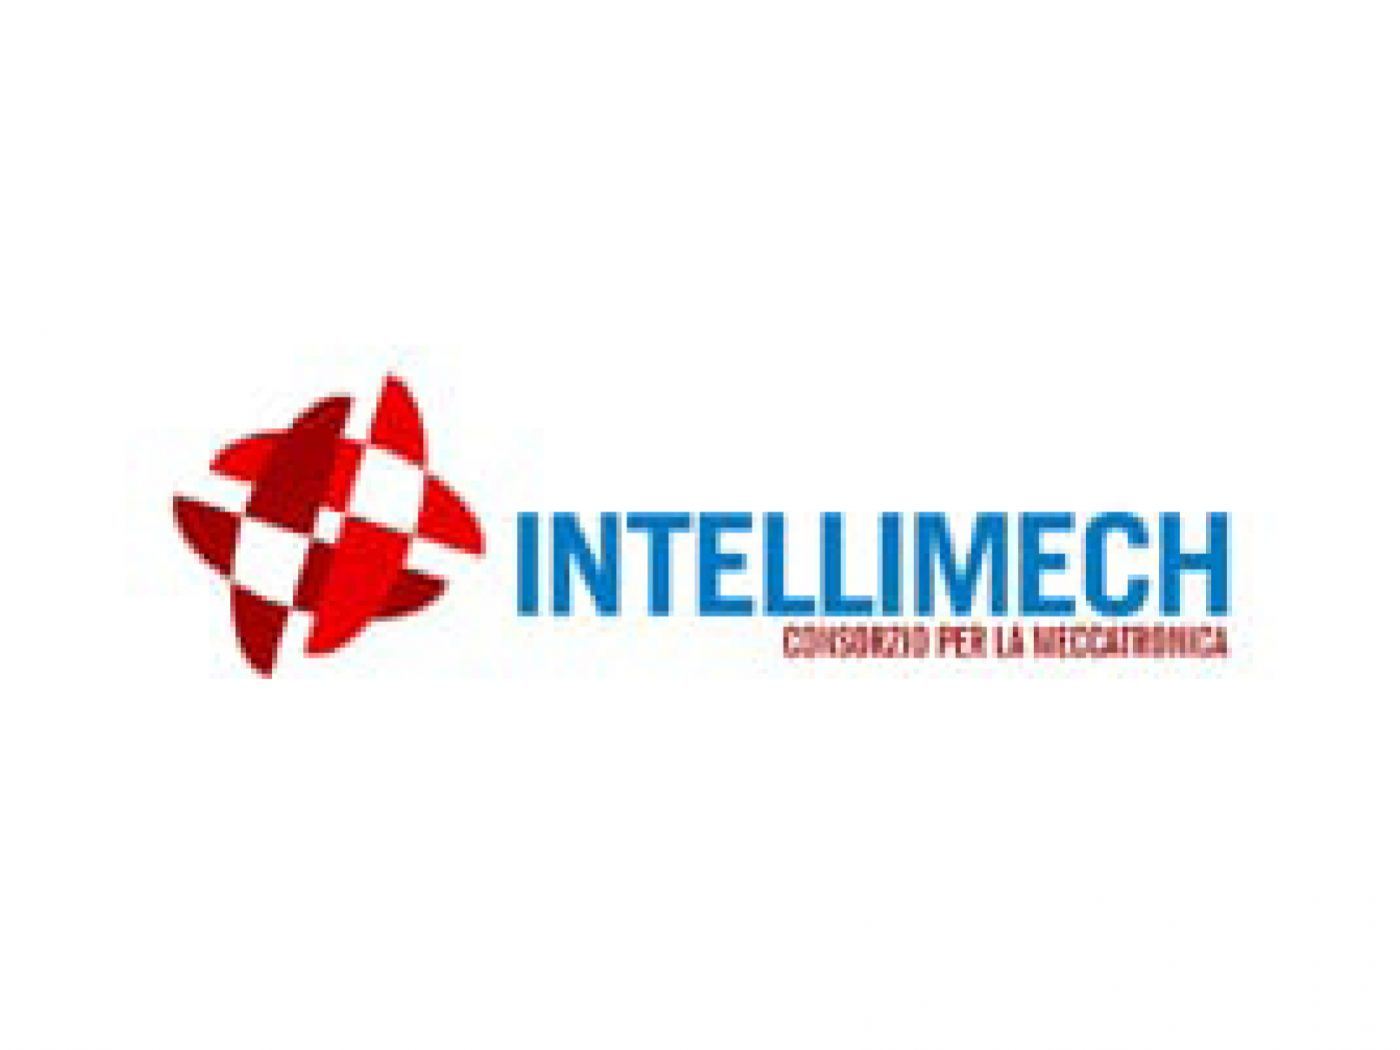 INTELLIMEC